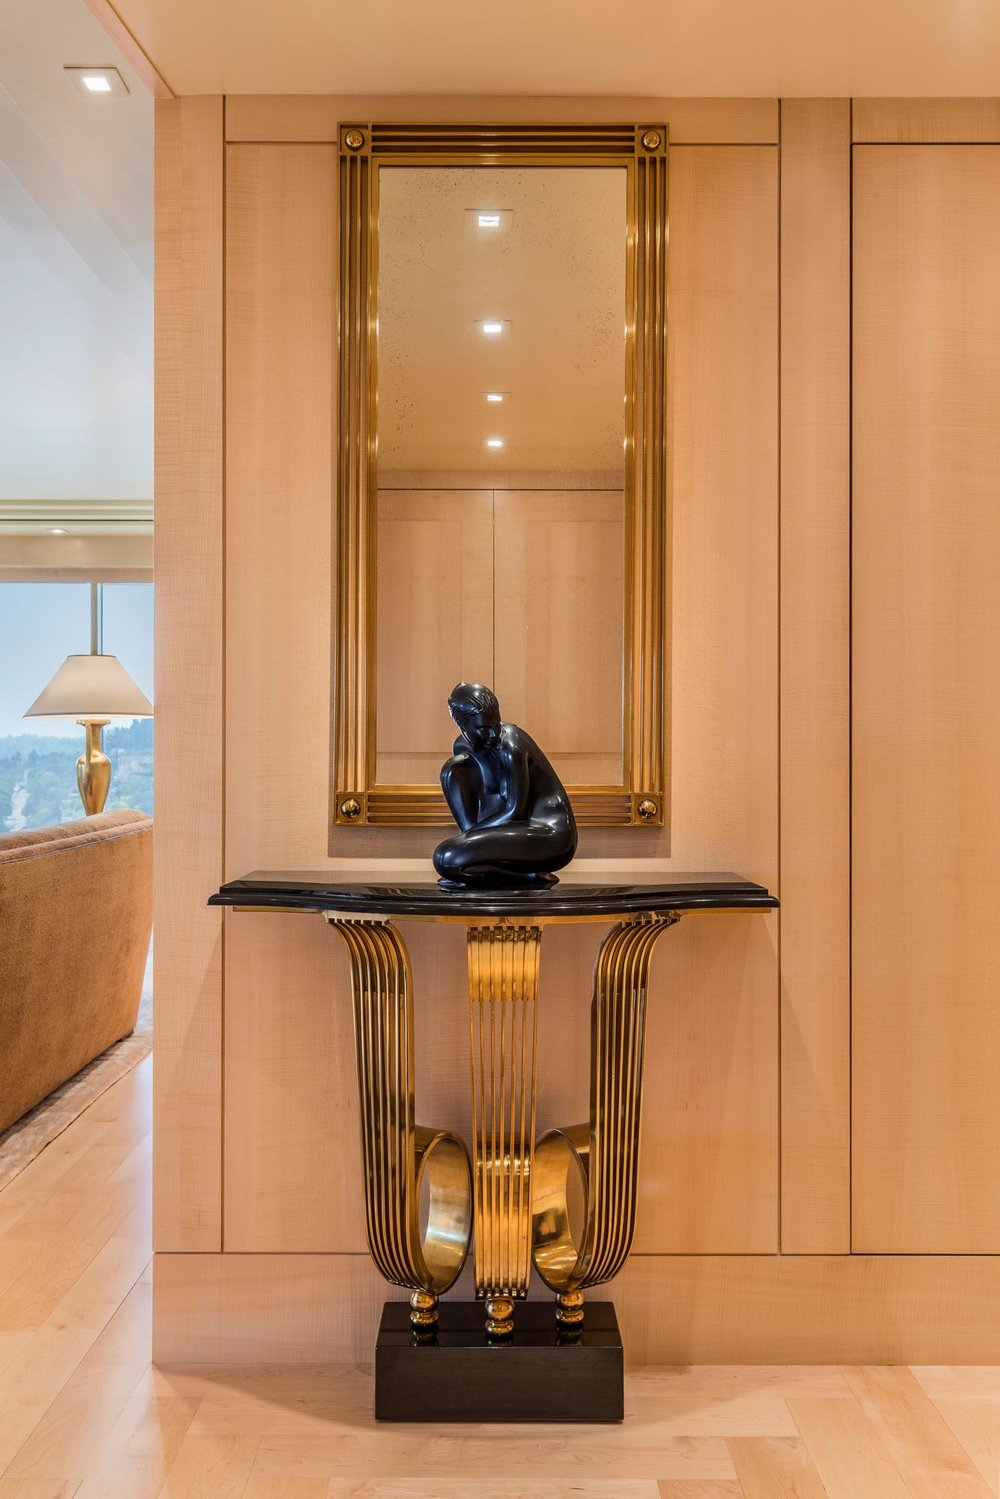 A table with statue on top, and a rectangular mirror on wall